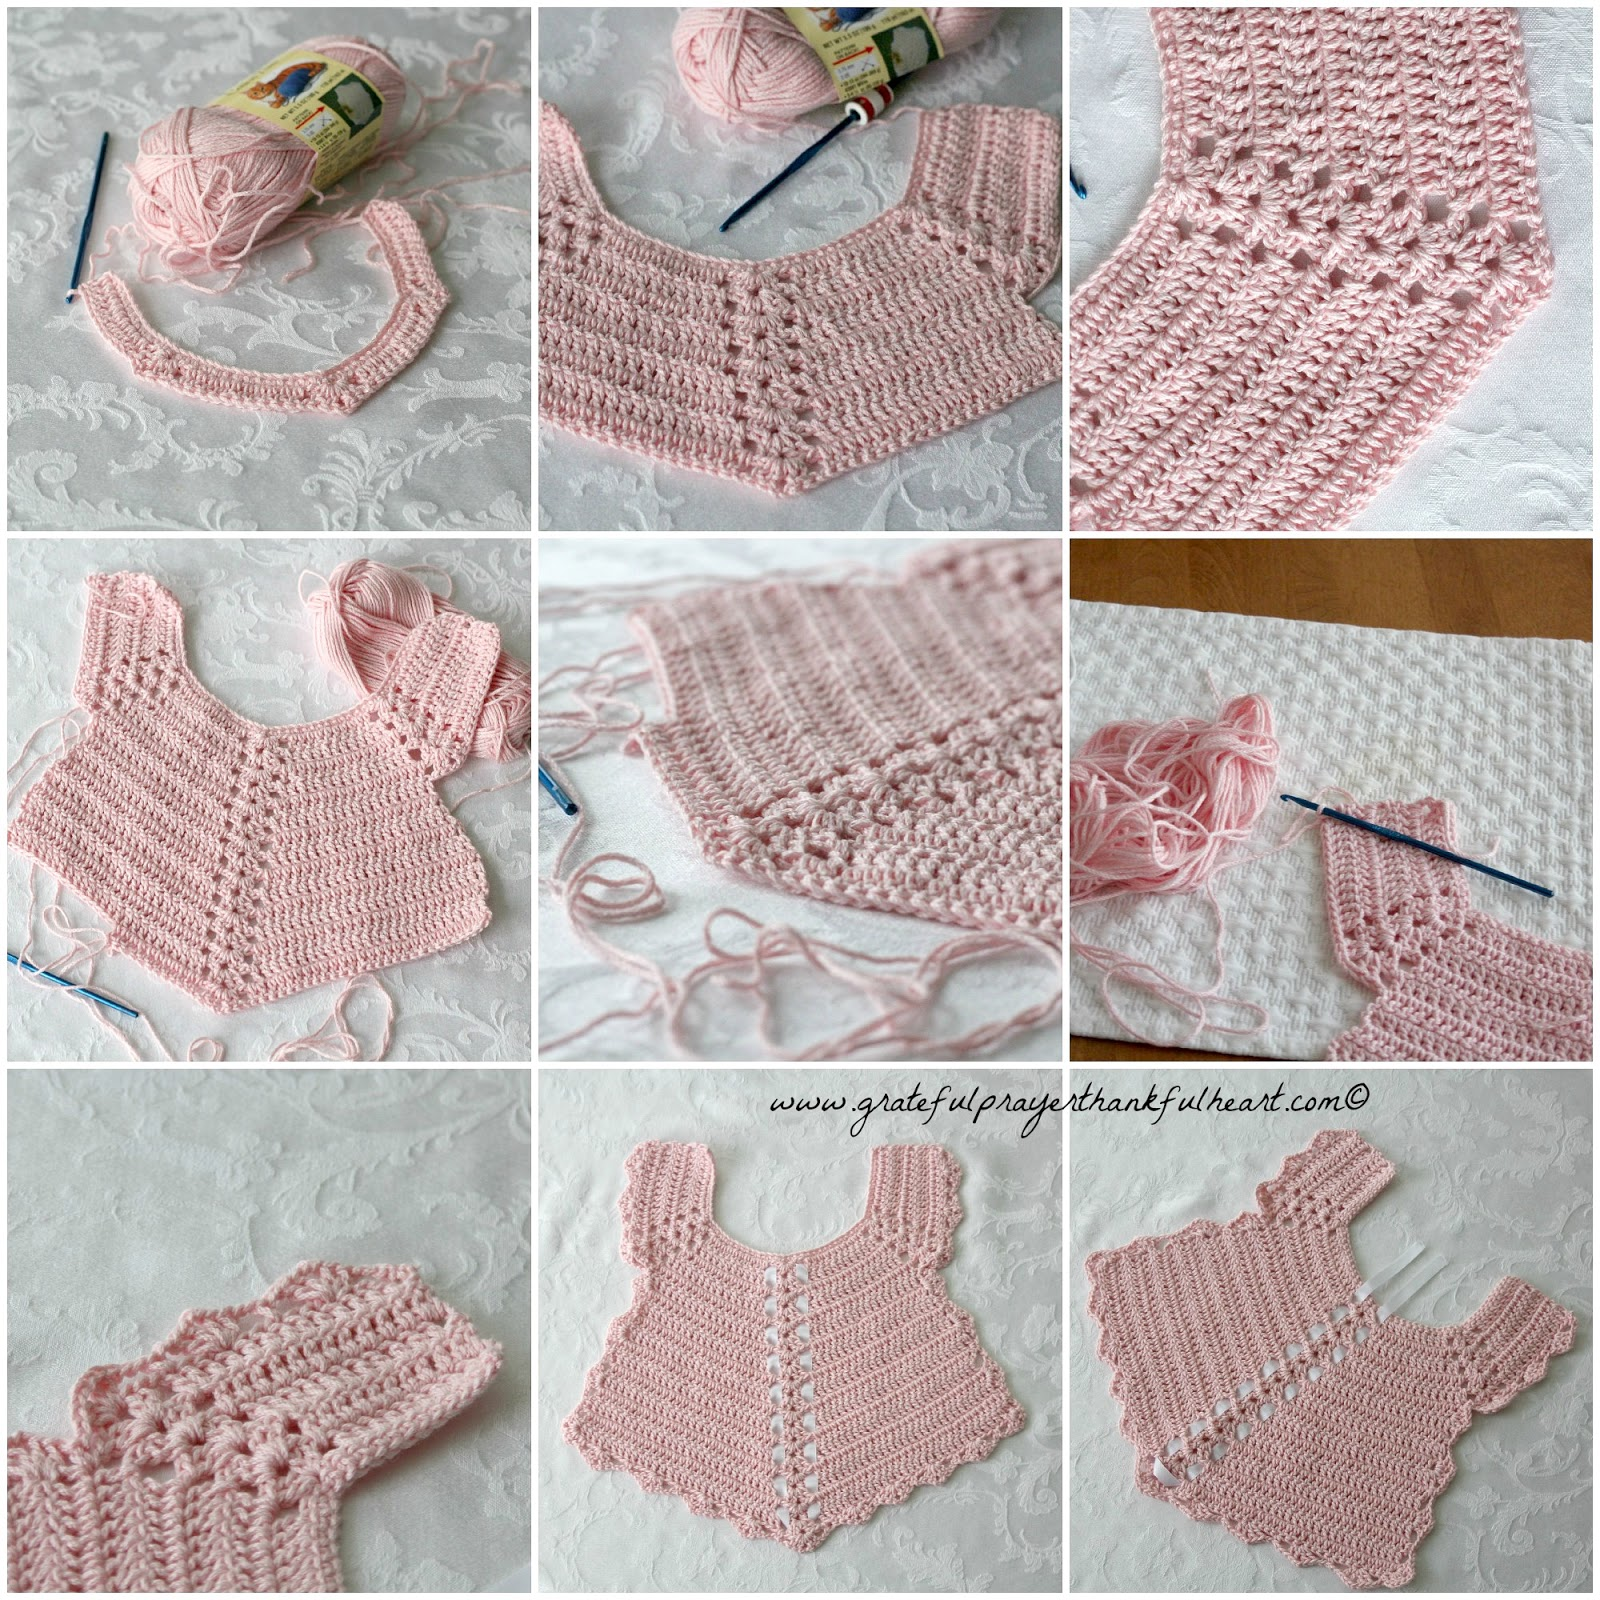 Thread Crochet Baby Bib Pattern : With a Grateful Prayer and a Thankful Heart: Crochet Baby ...